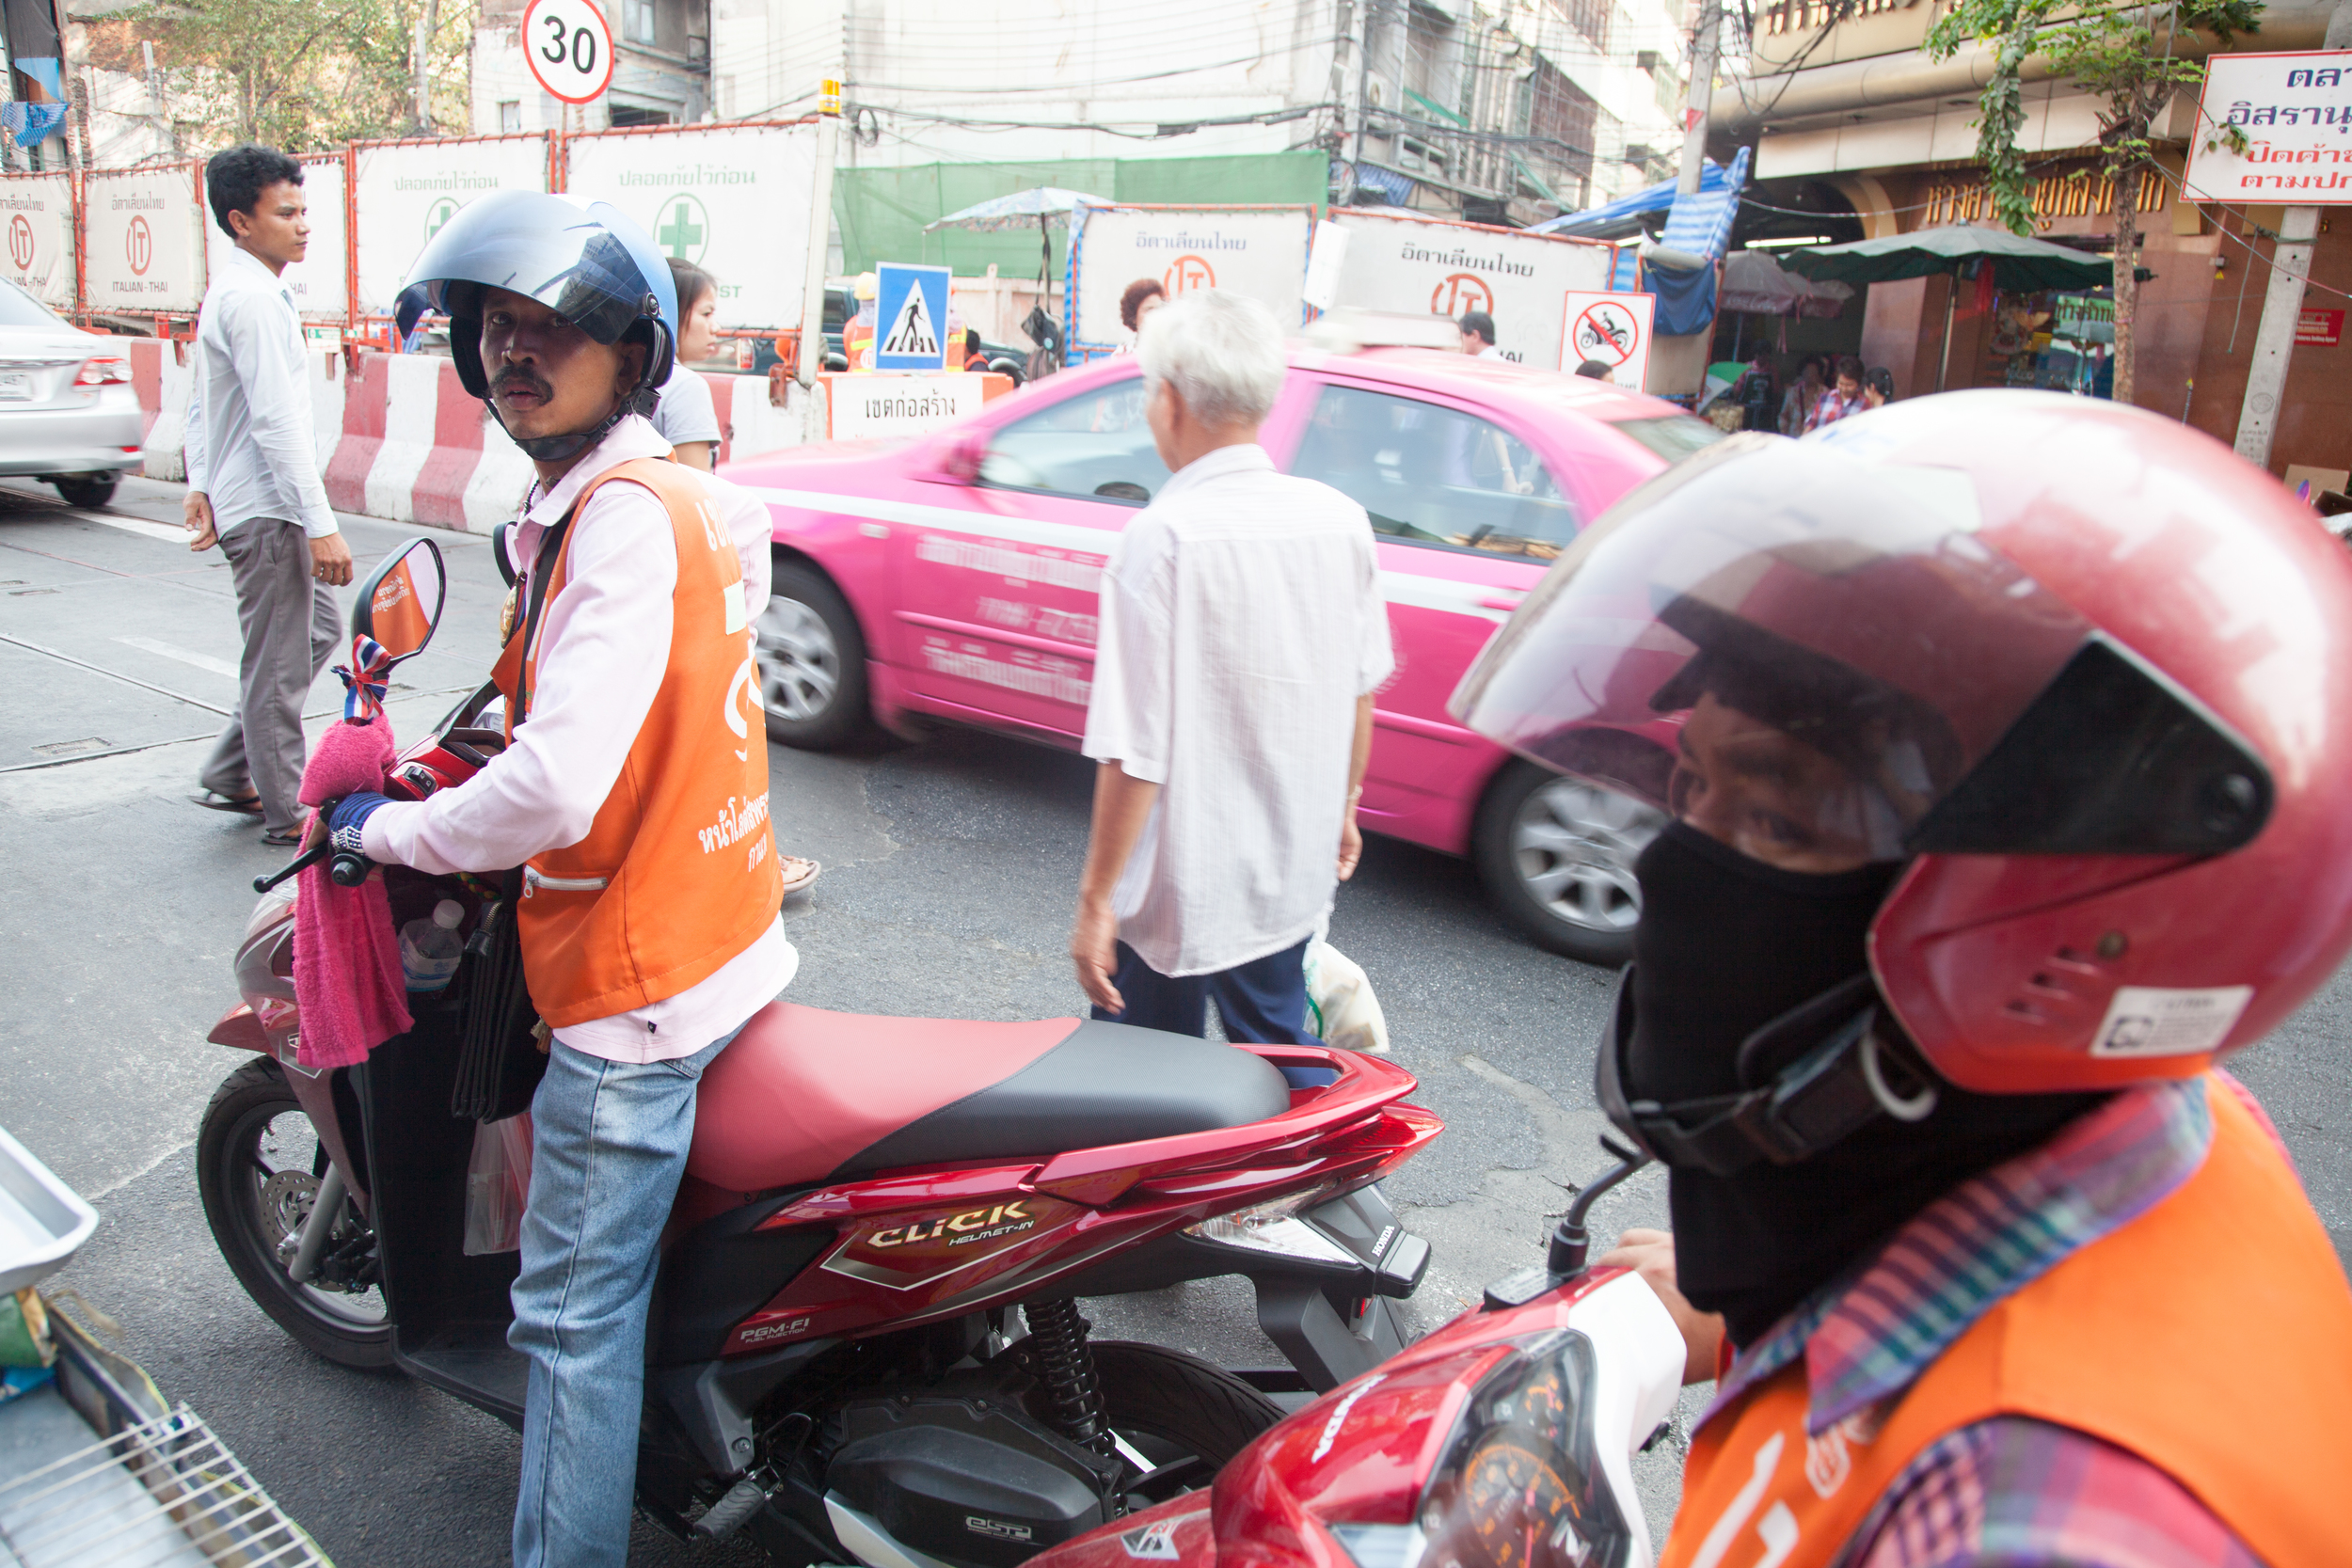 Manic Bike Taxis on the lawless streets of Bangkok....Wat could possibly go wrong?